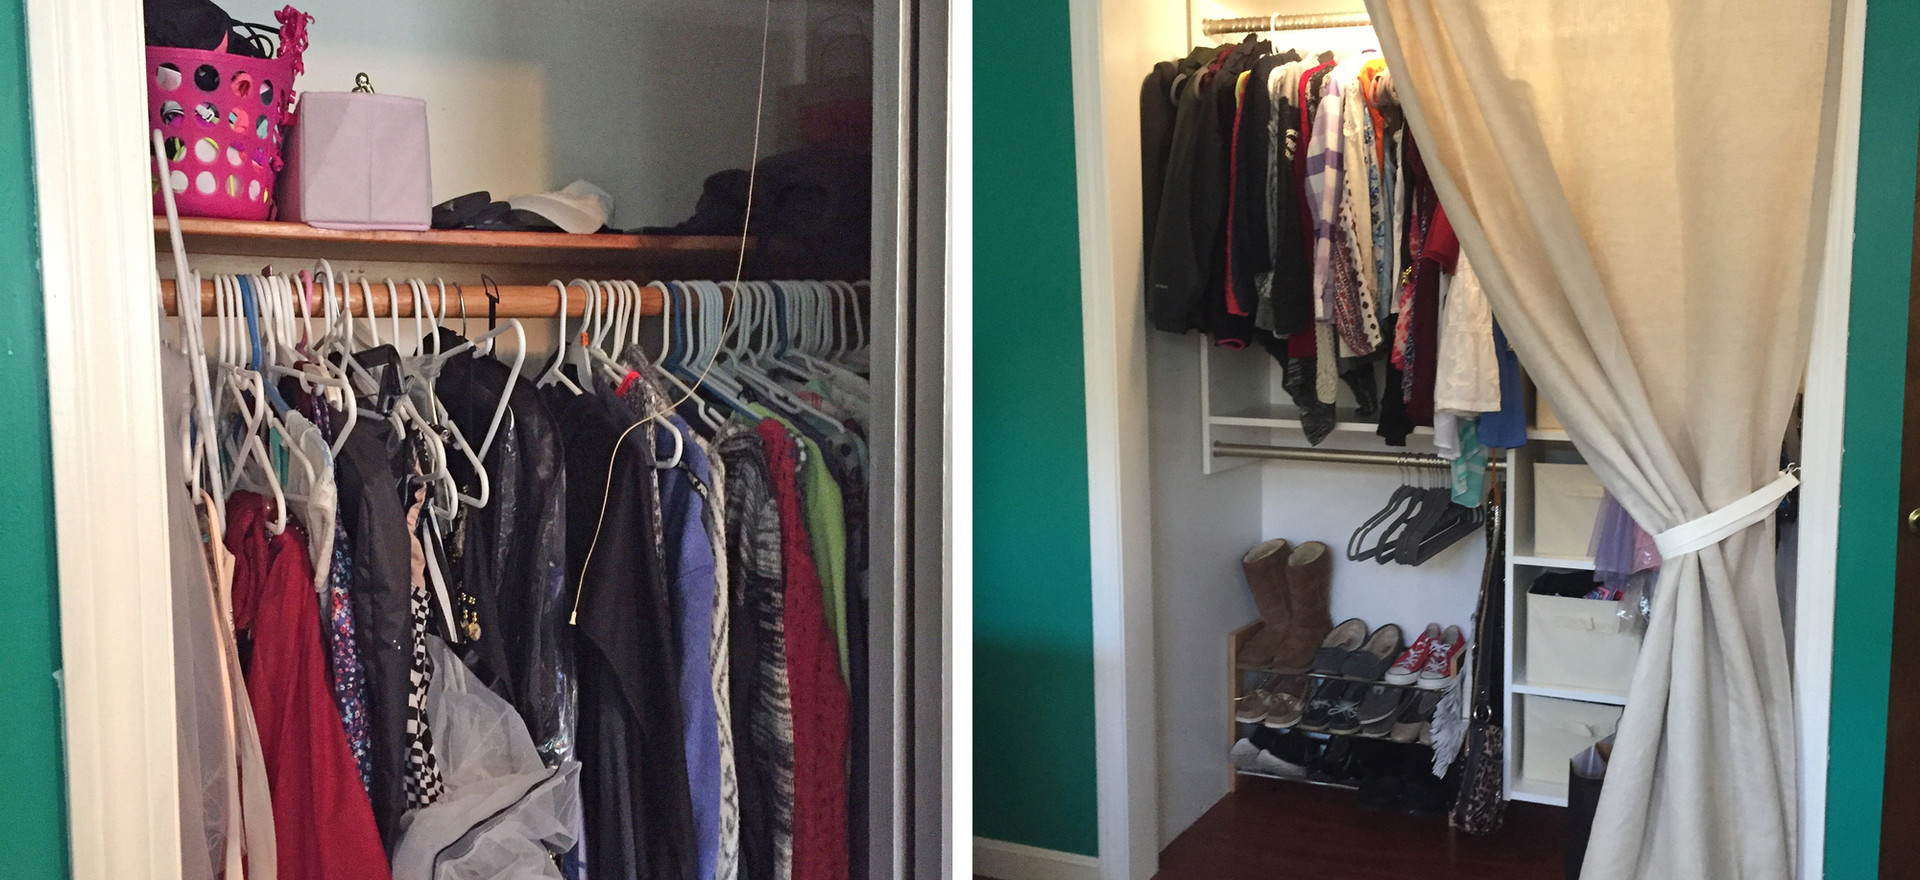 Syd_before after closet.jpg